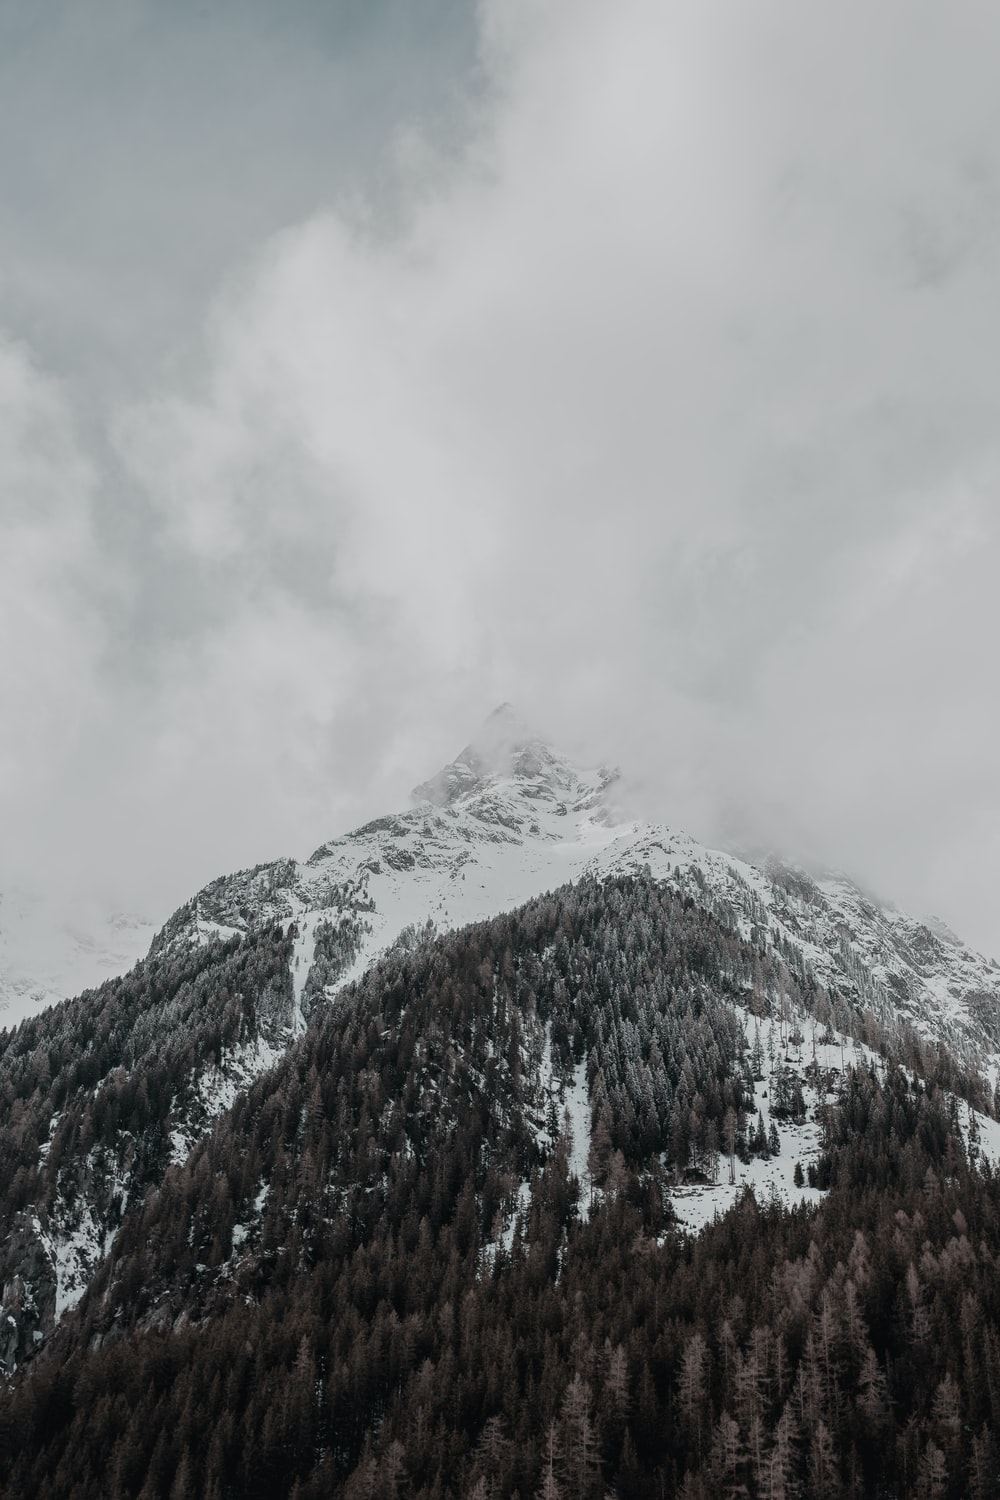 mountain covered with snow and fogs